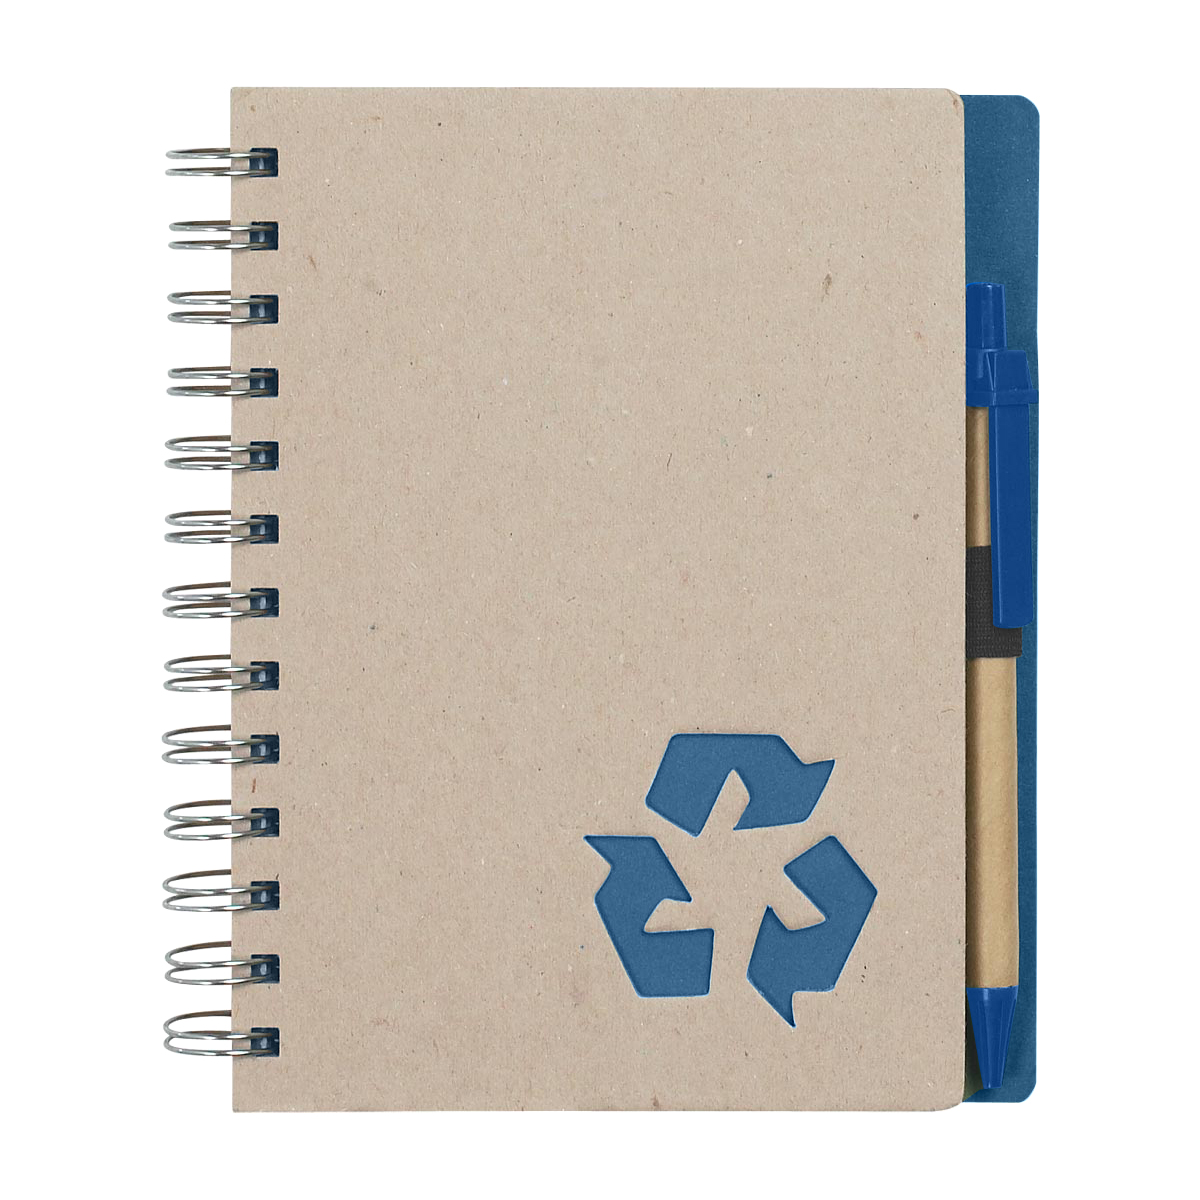 Blue Eco-Inspired Spiral Notebook & Pen